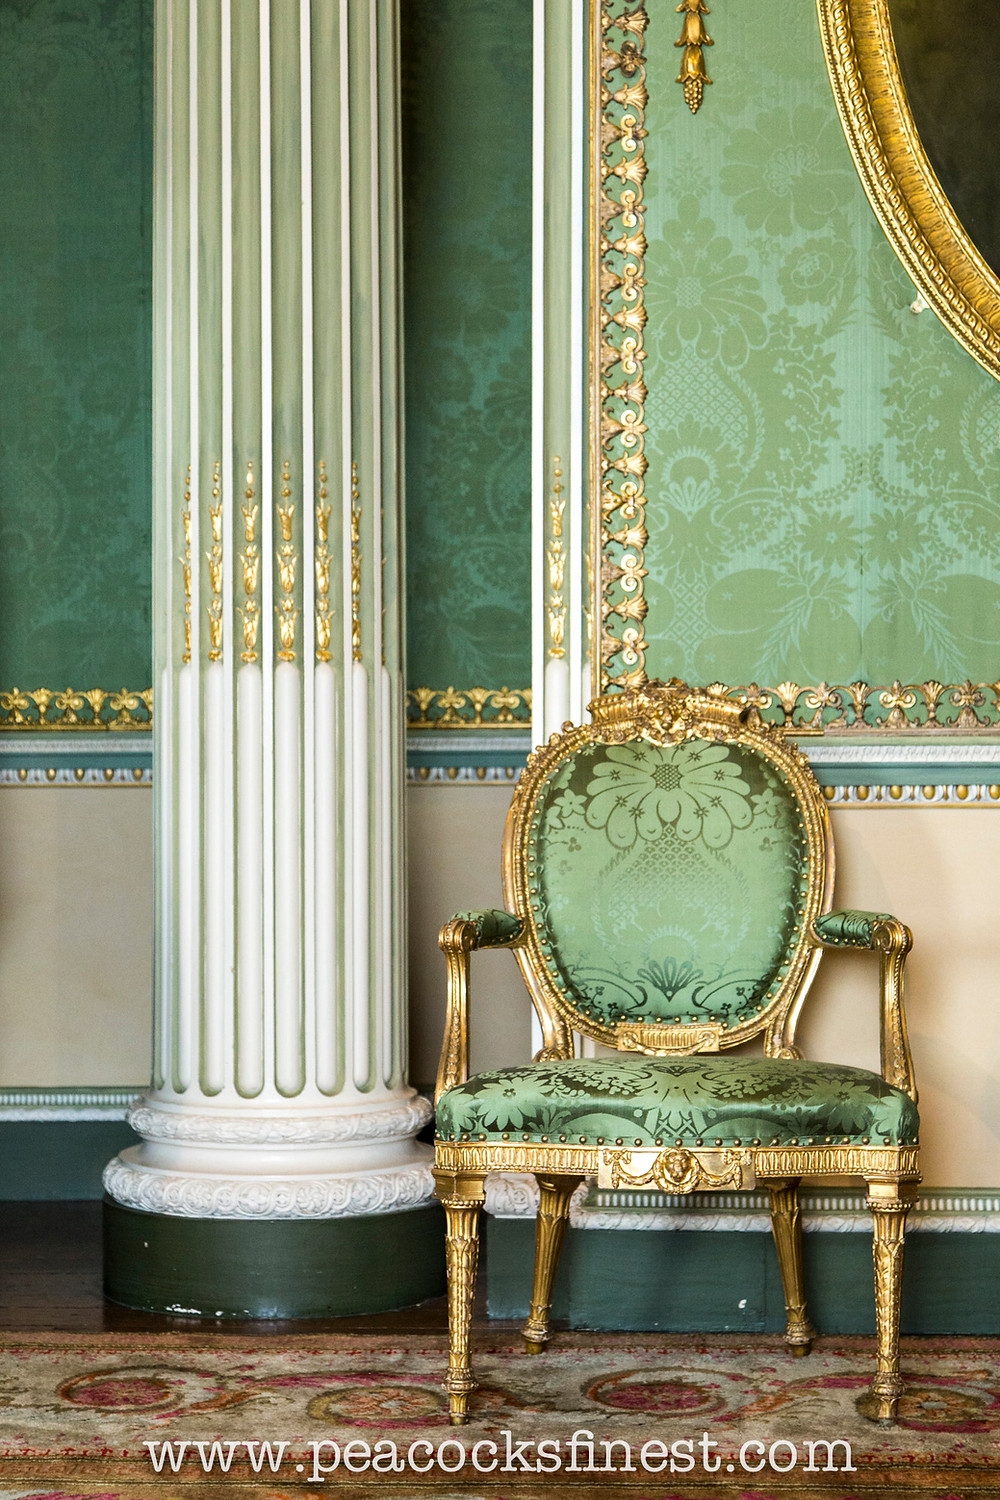 Harewood House, the State Bedroom. One of a set of eighteen George III period giltwood open armchairs supplied by Thomas Chippendale for the house.